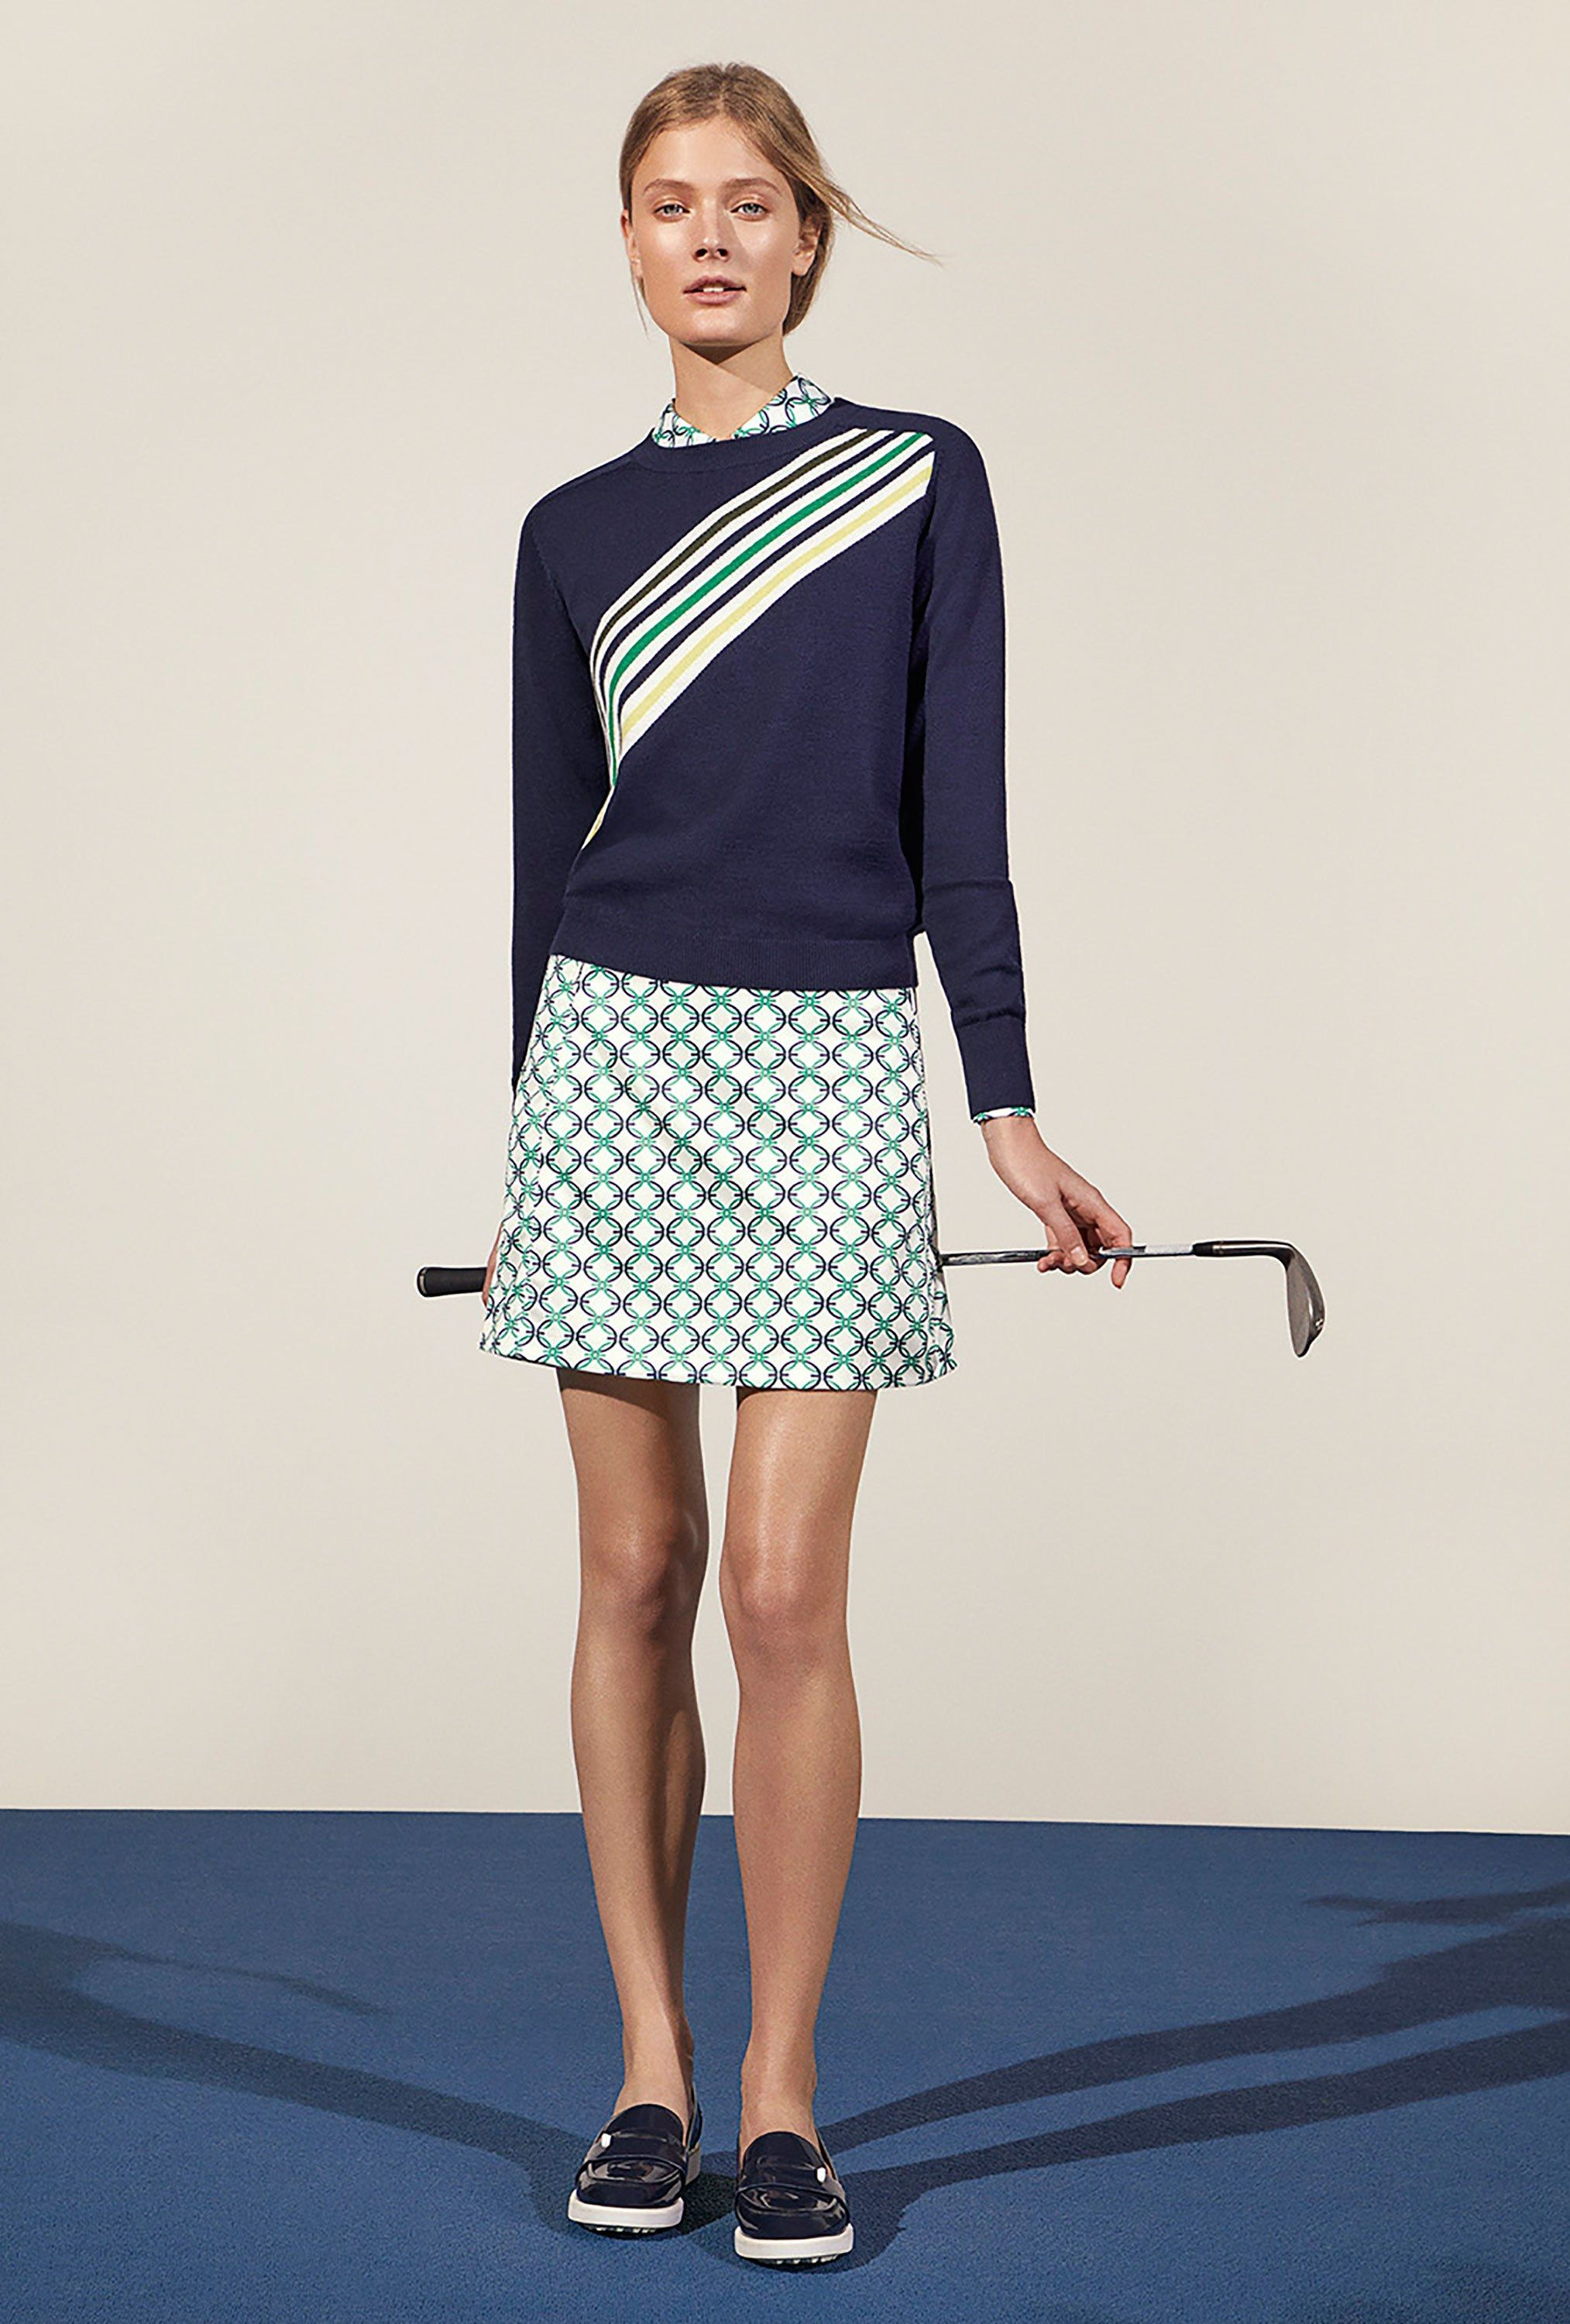 716955708b78 Tory Burch s New Tory Sport Collection for Fall 2017